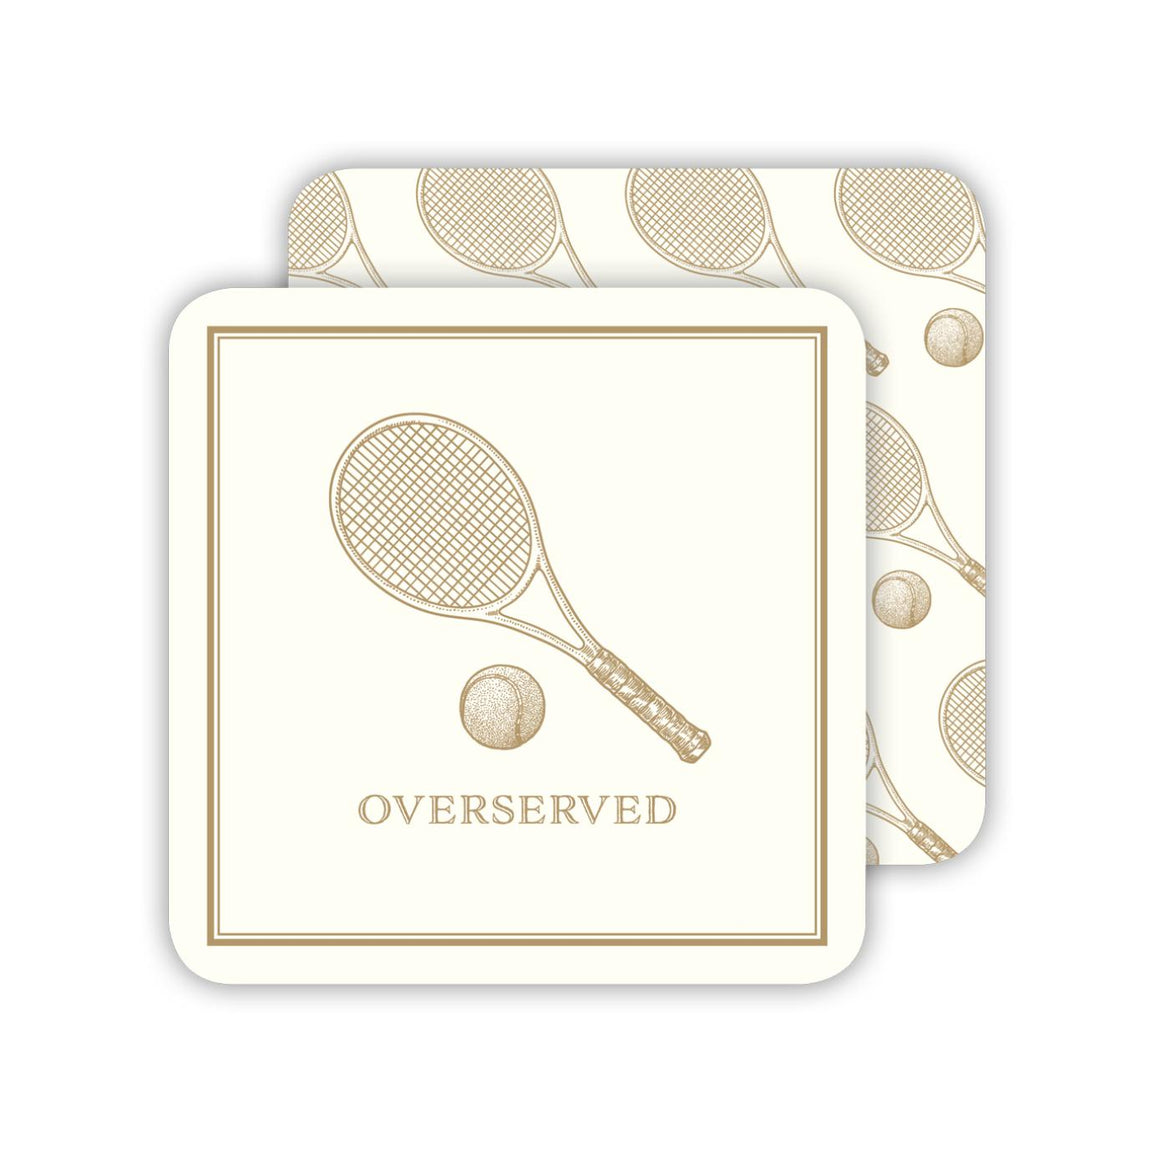 Overserved Tennis Racquet Paper Coasters - The Preppy Bunny